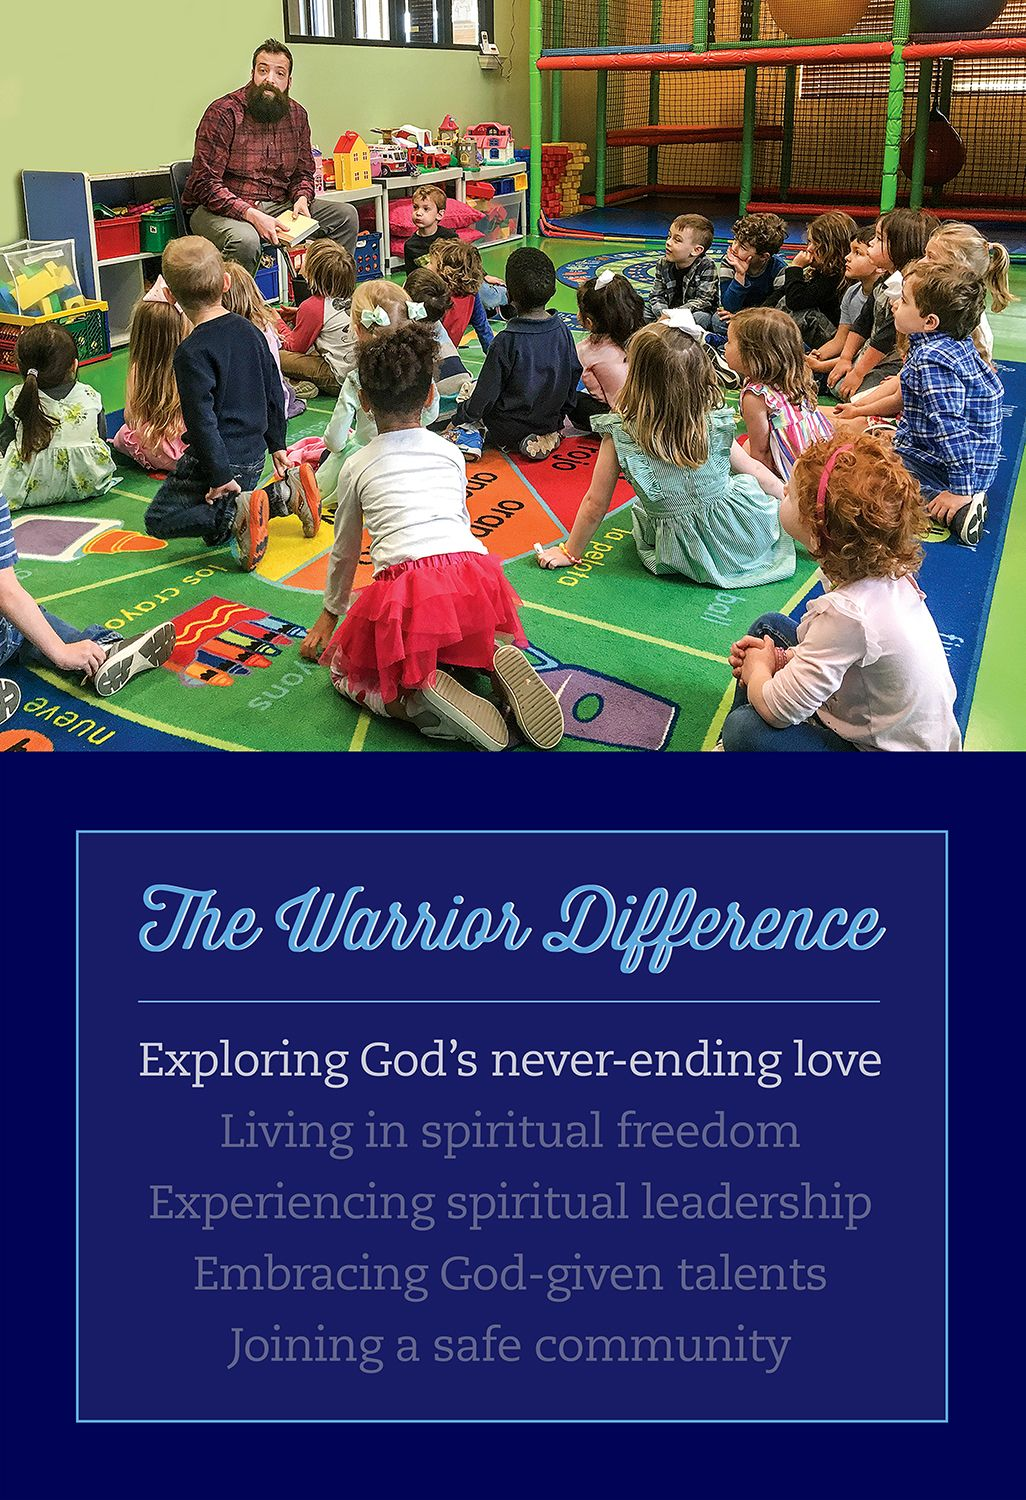 Exploring God's never-ending love